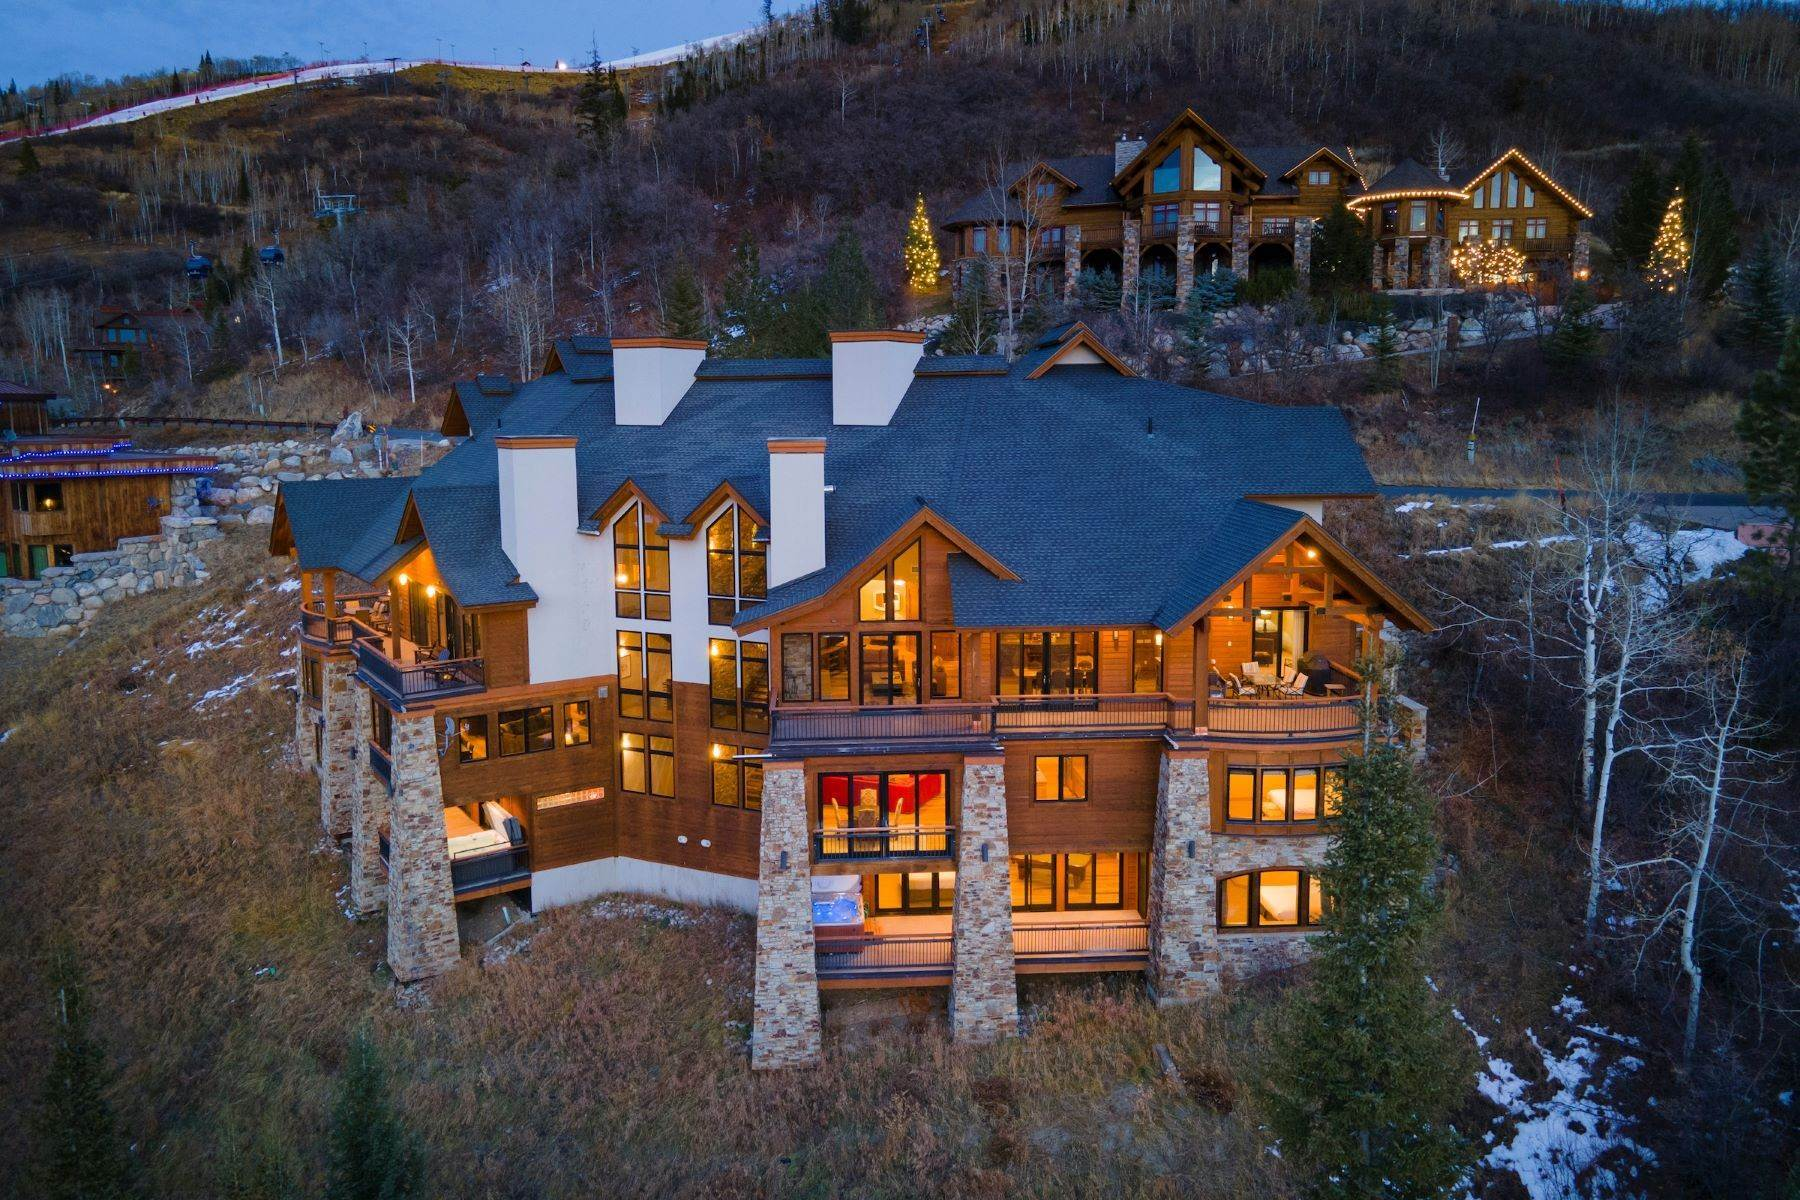 Property for Sale at Luxury Mountain Retreat Falconhead South 2607 Ski Trail Lane Steamboat Springs, Colorado 80487 United States